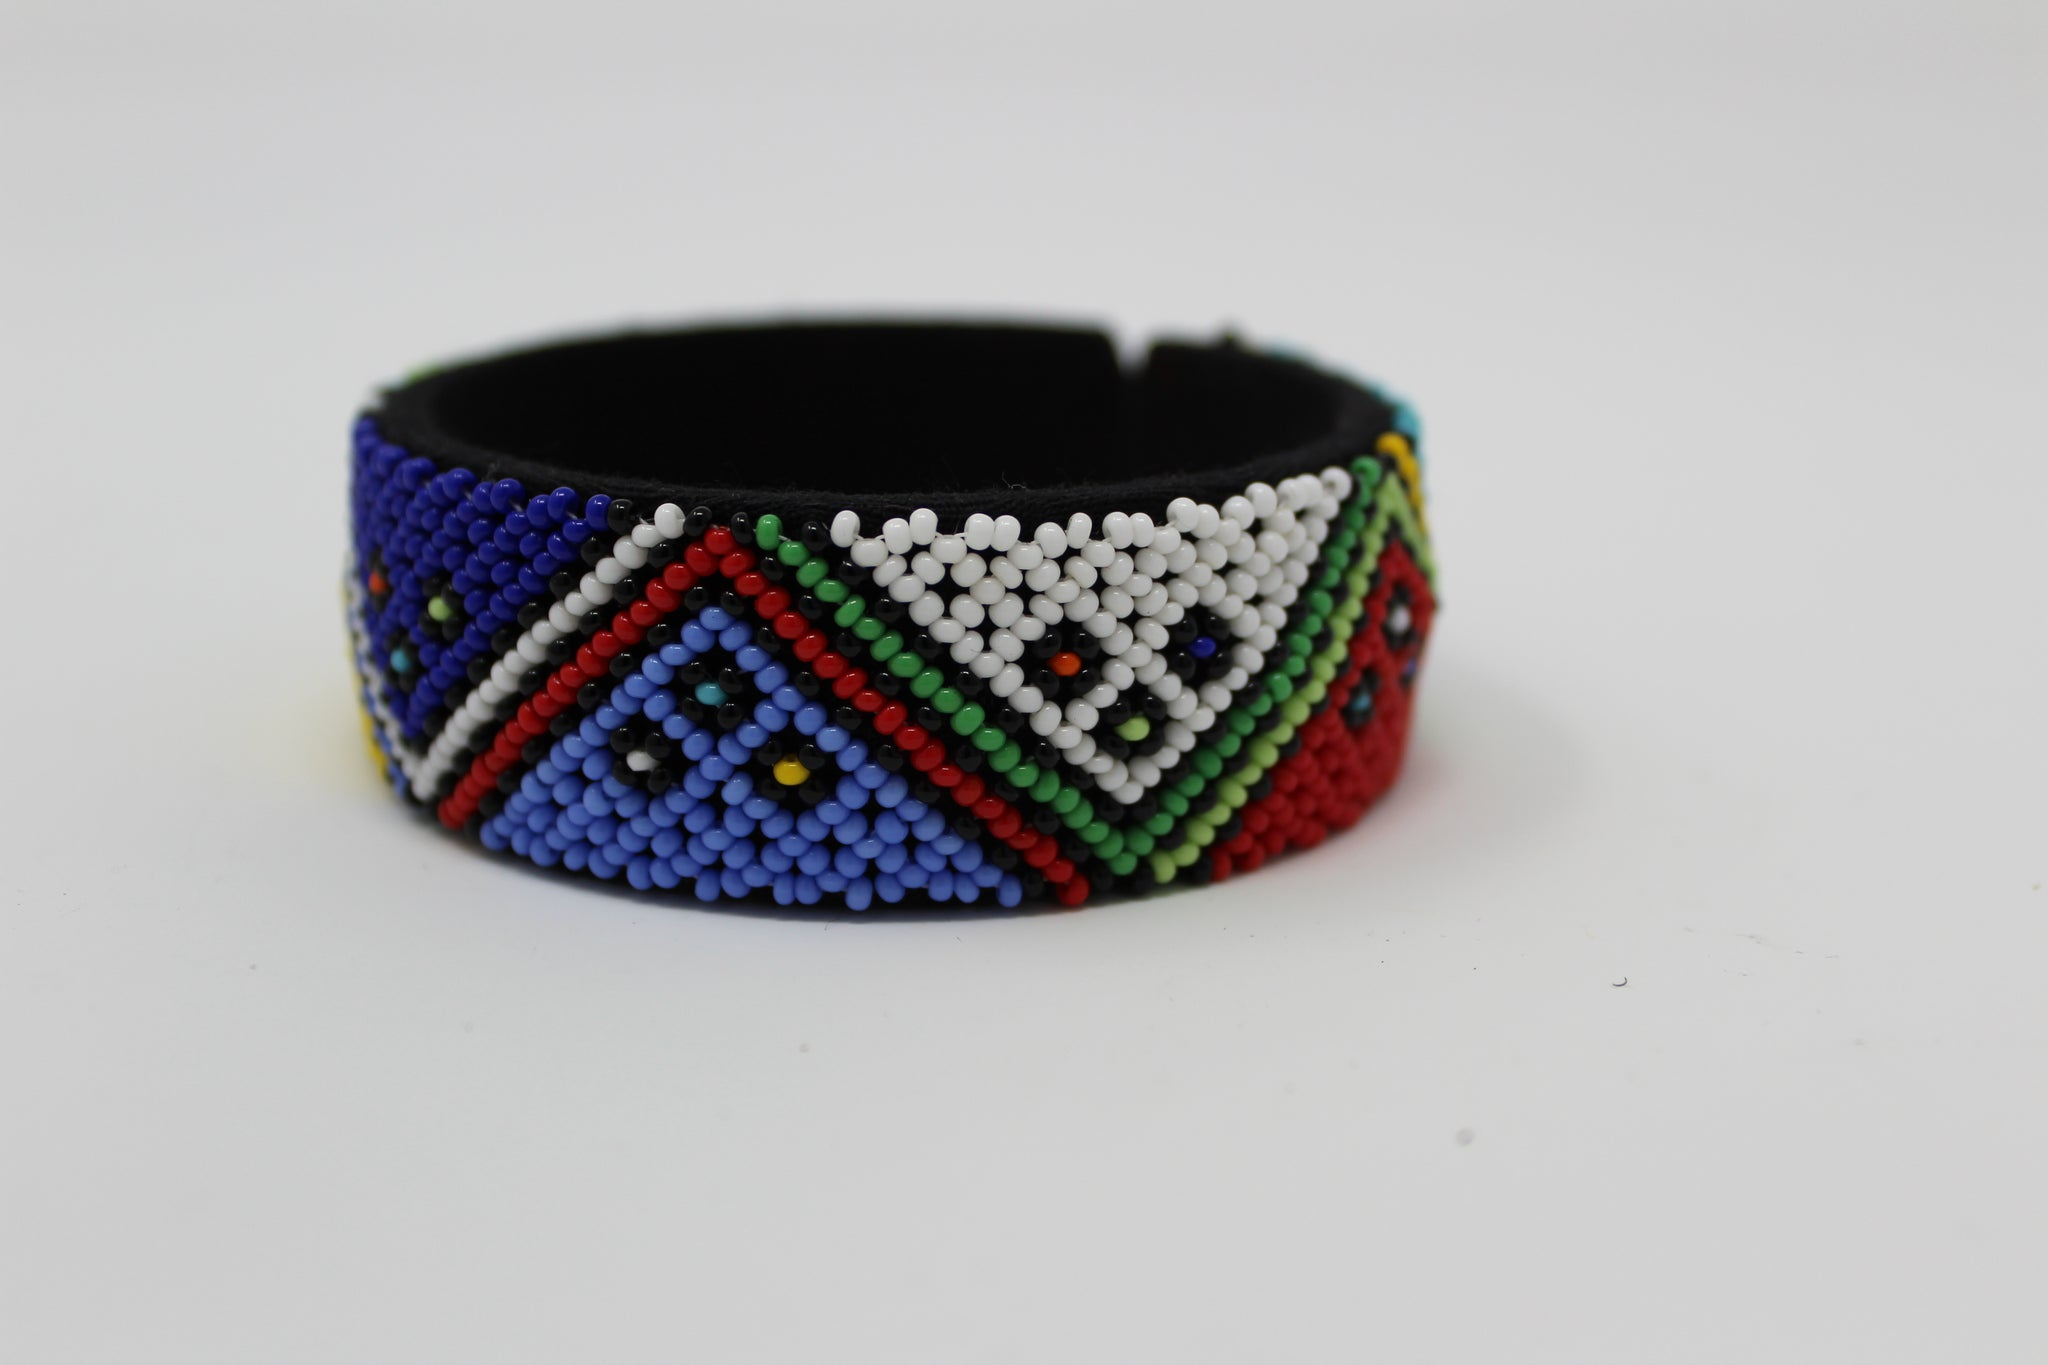 Beaded Bangle free size African jewelry  bracelet african bangles  handcrafted for women and girls in green purple red yellow multicolor design south african tradition jewelry